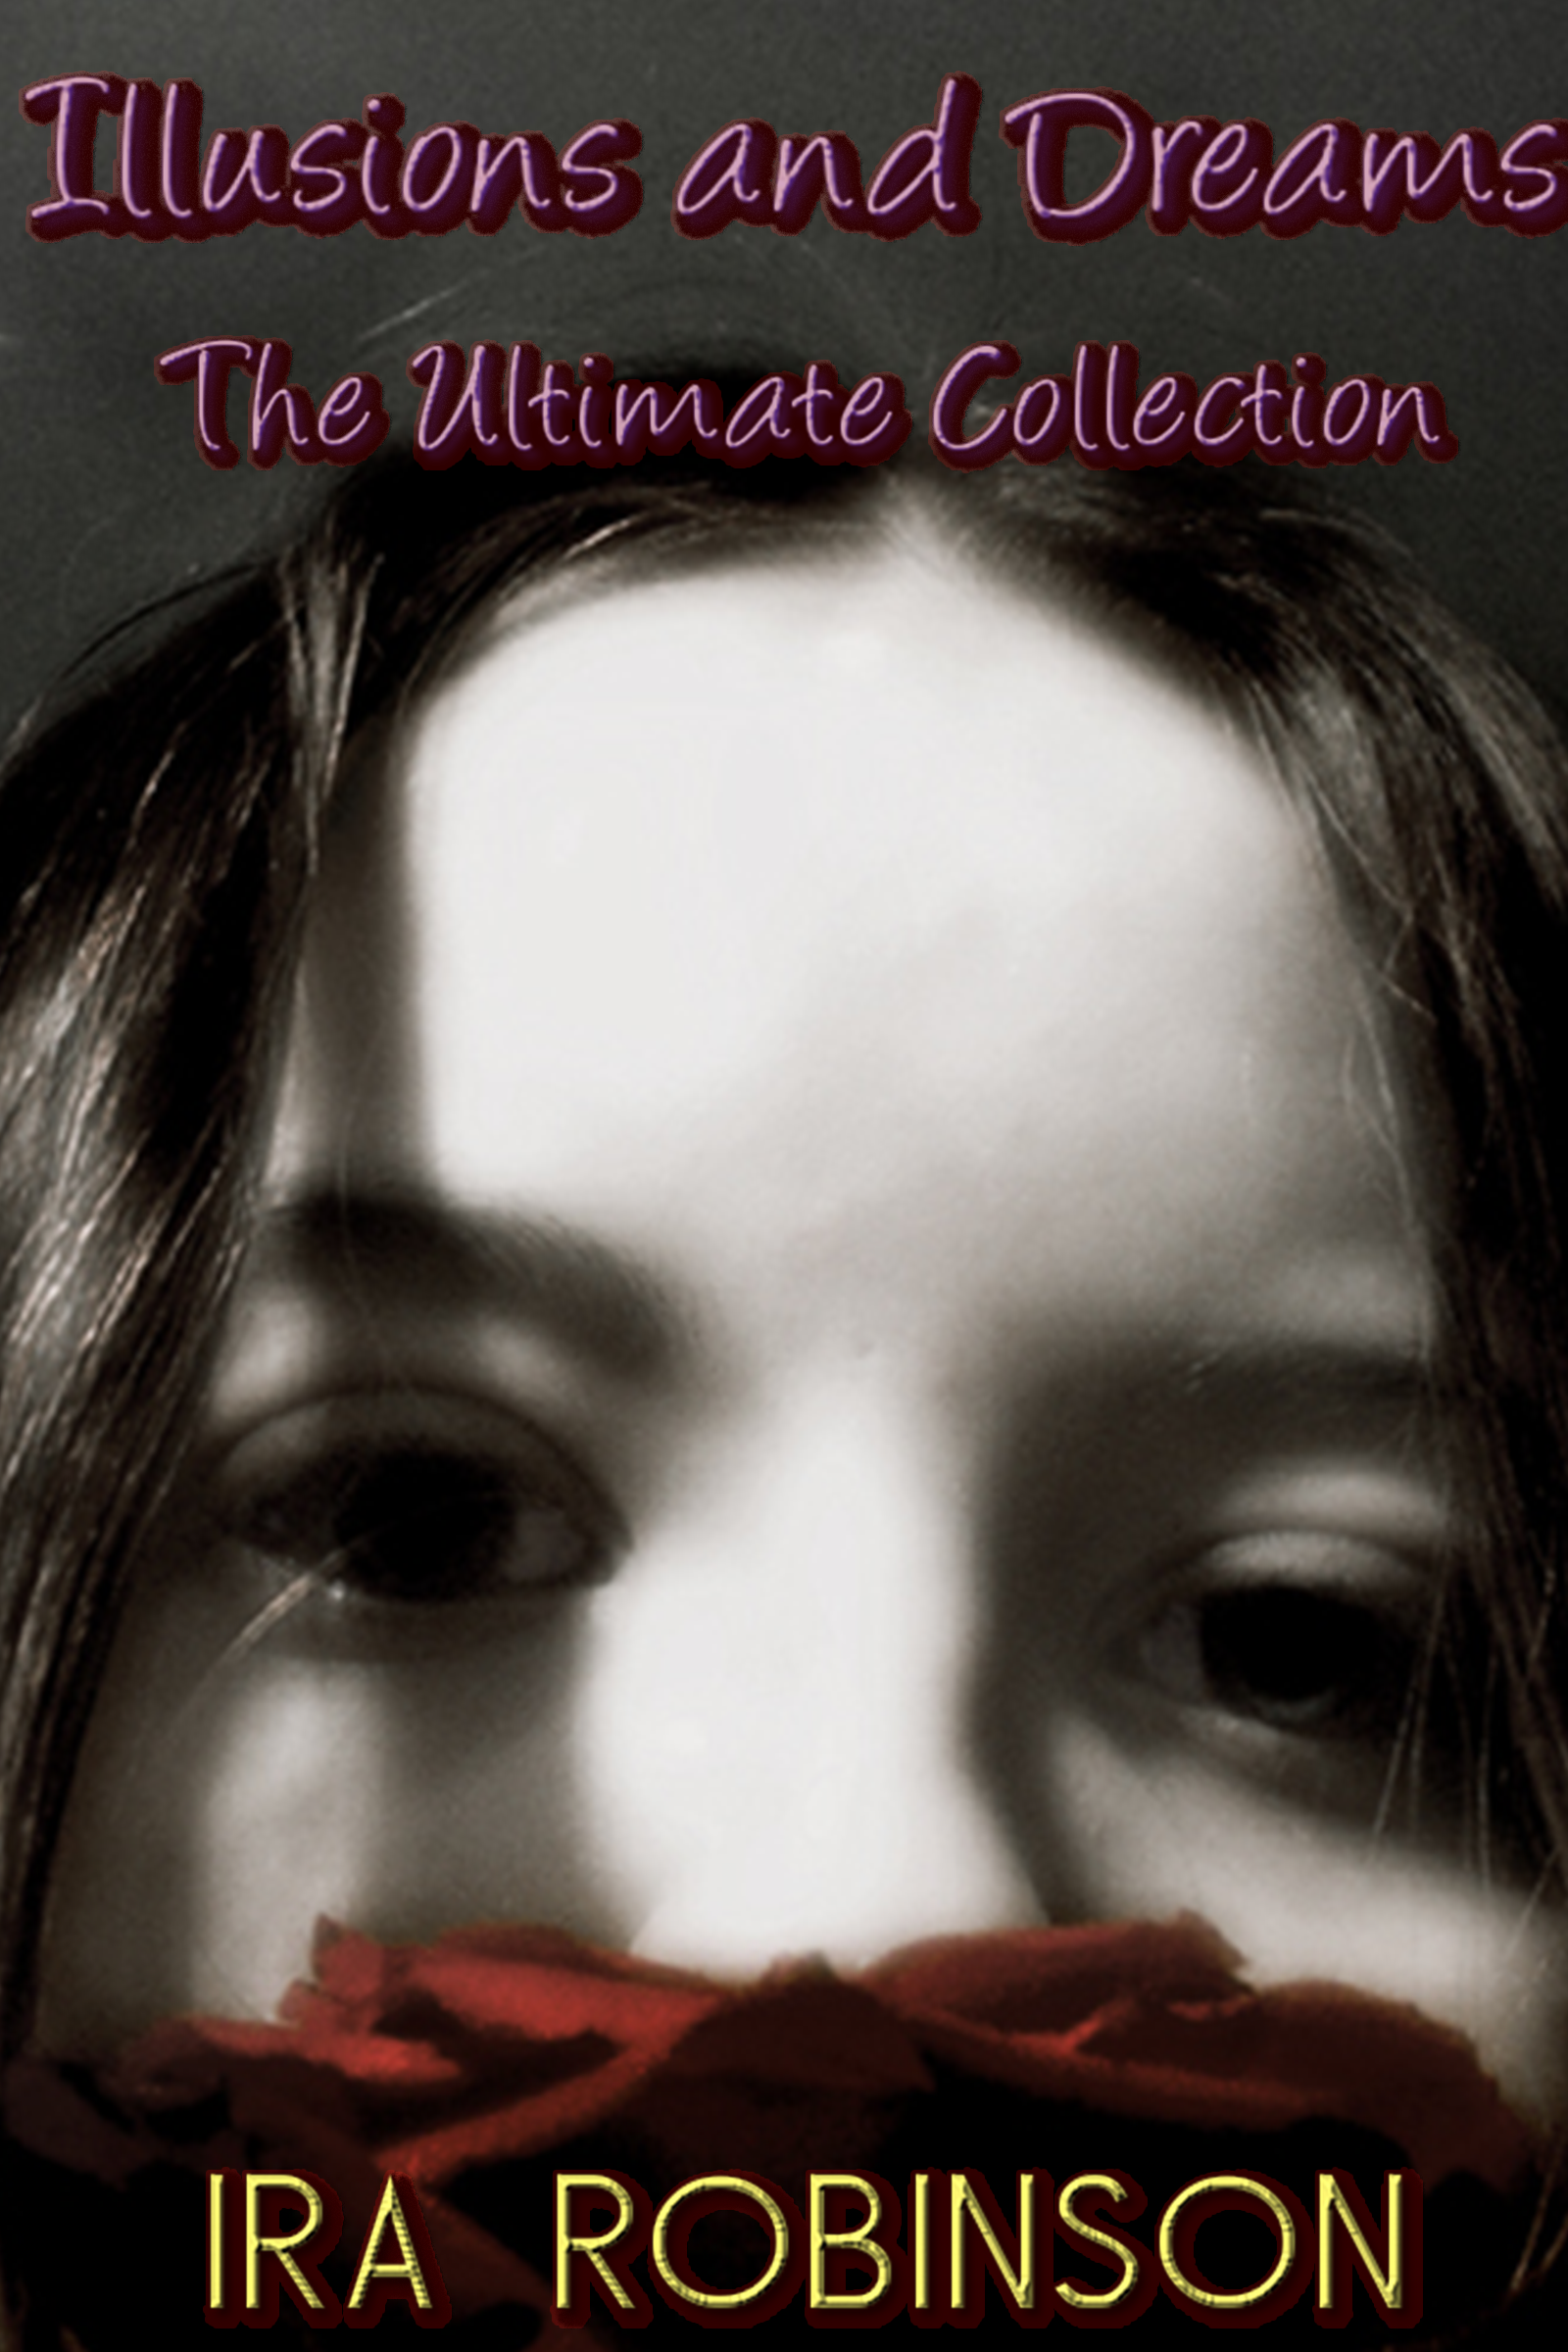 Illusions and Dreams - The Ultimate Collection